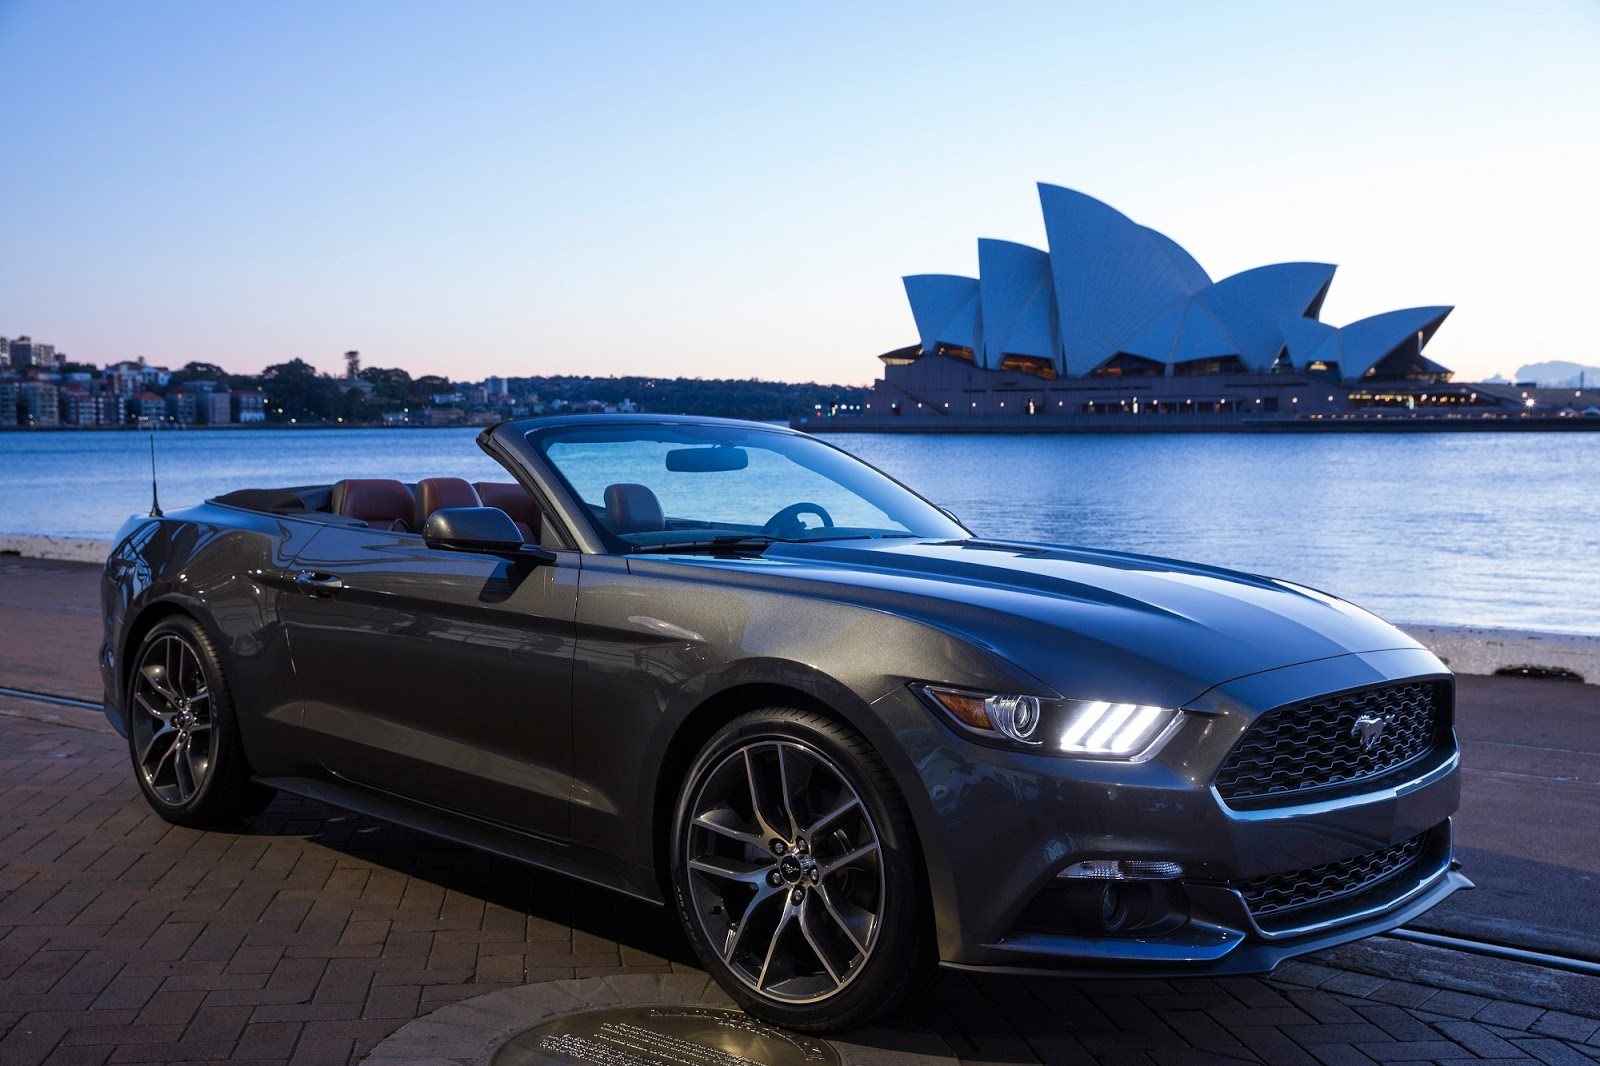 Mustang Sydney Aus Η Ford Mustang πρώτη σε ταξινομήσεις στην κατηγορία sports coupe σε όλο τον κόσμο Bestseller, COUPE, Ford, Ford Mustang, Muscle cars